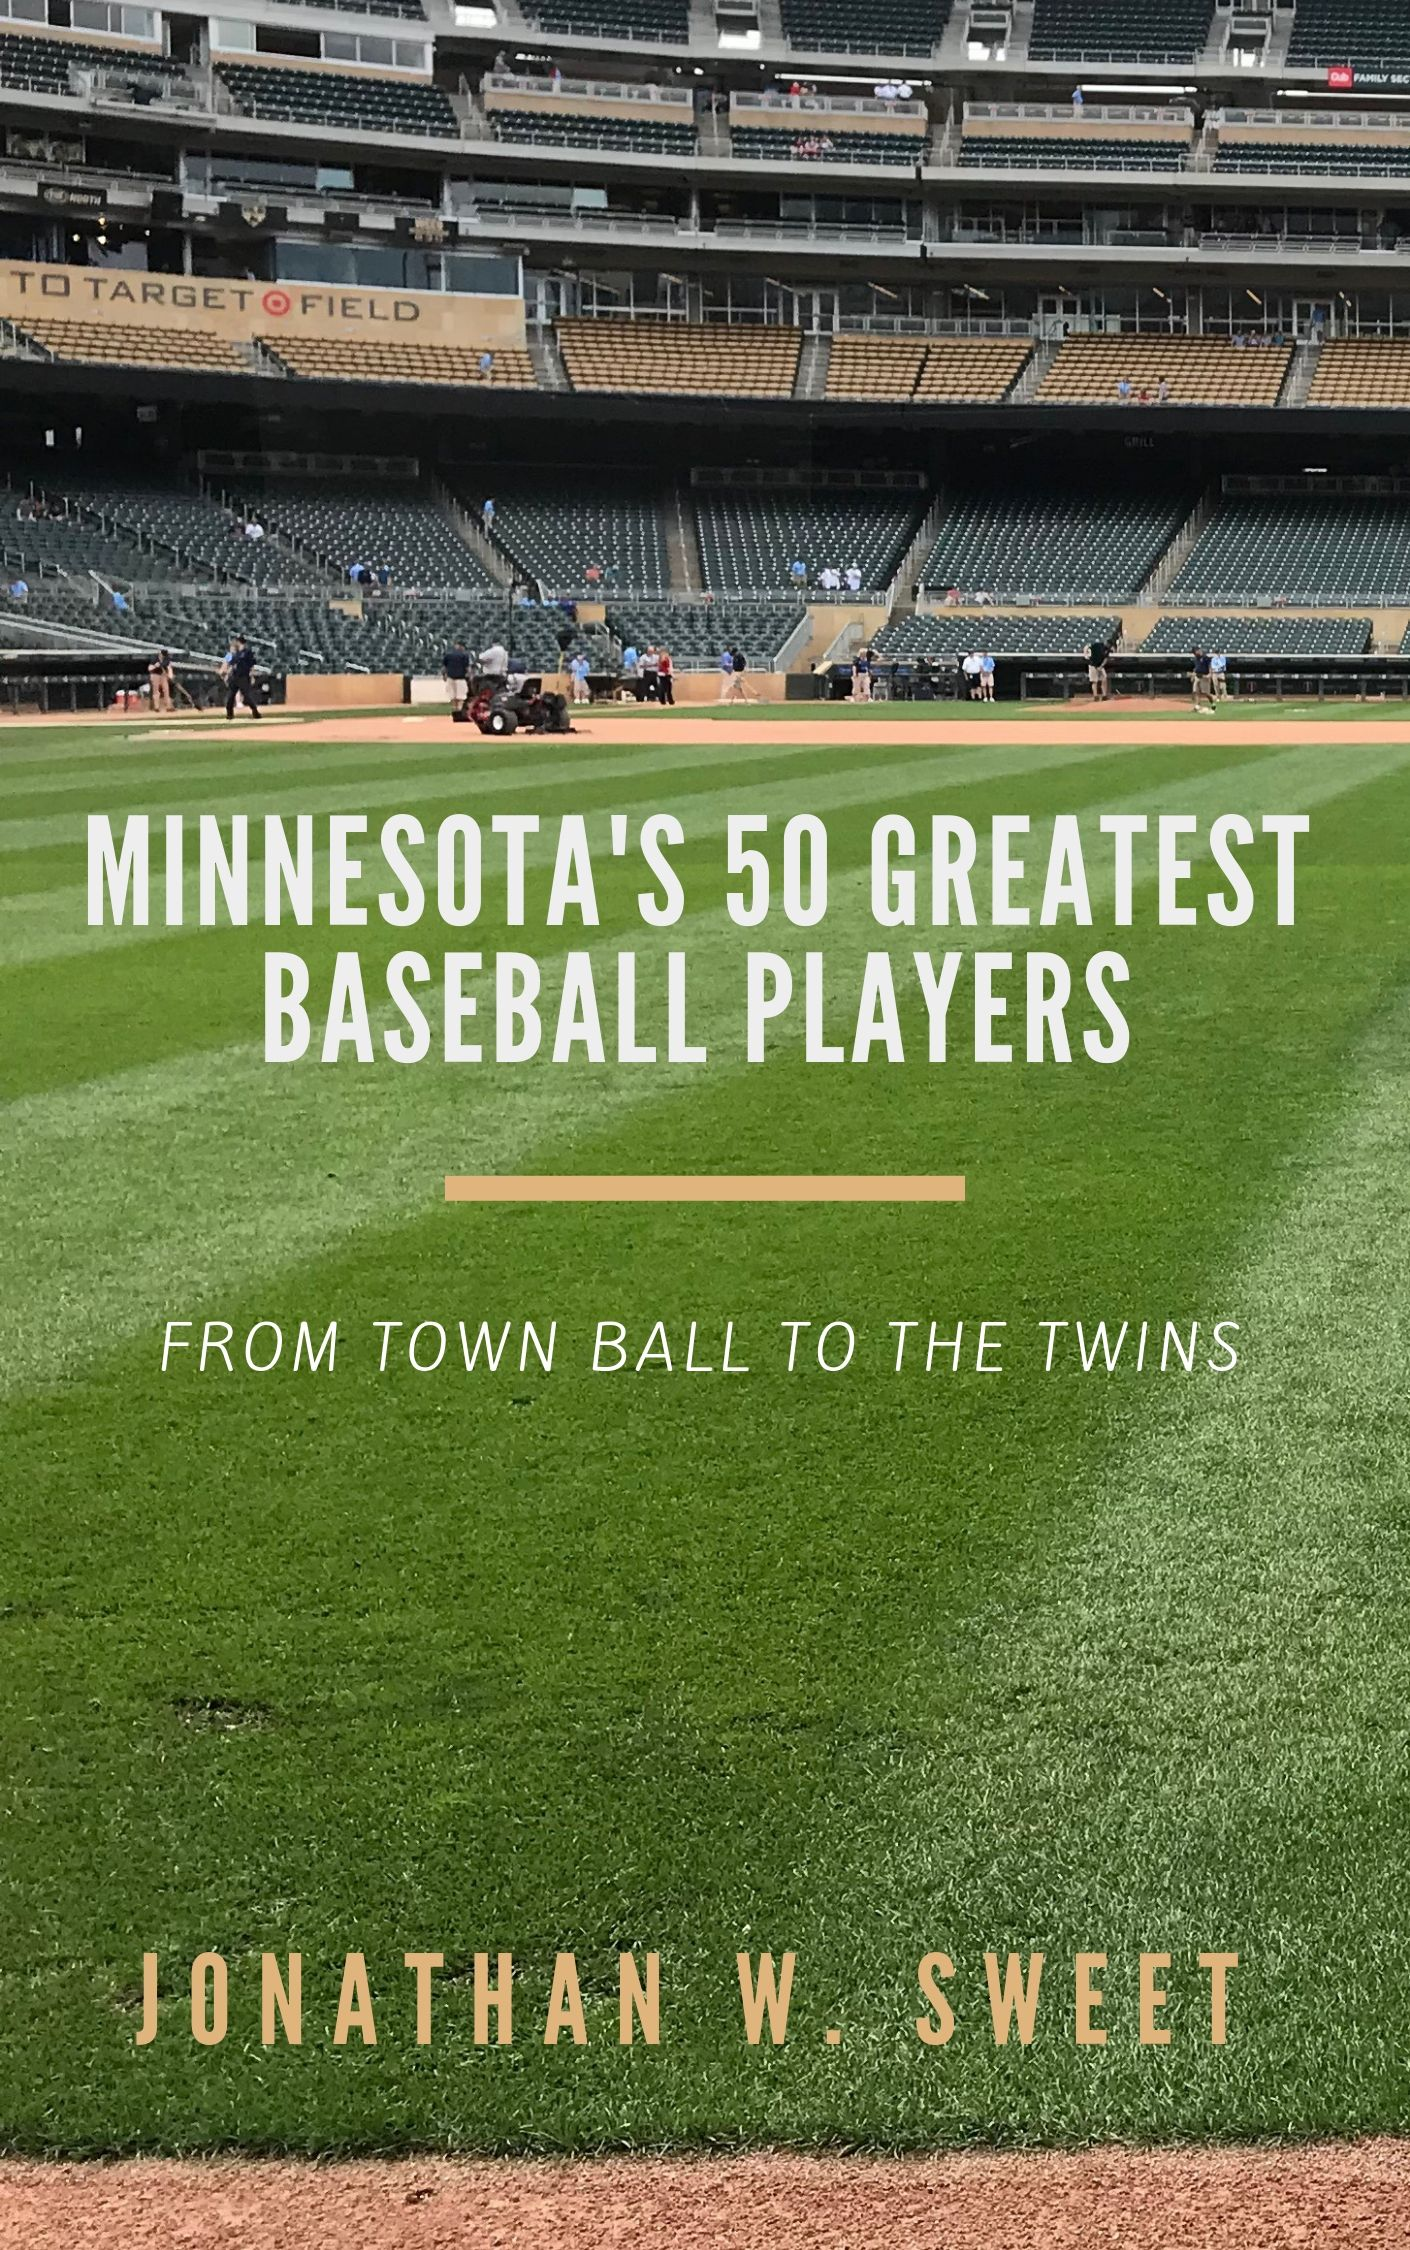 Minnesota's 50 Greatest Baseball Players: From Town Ball to the Twins